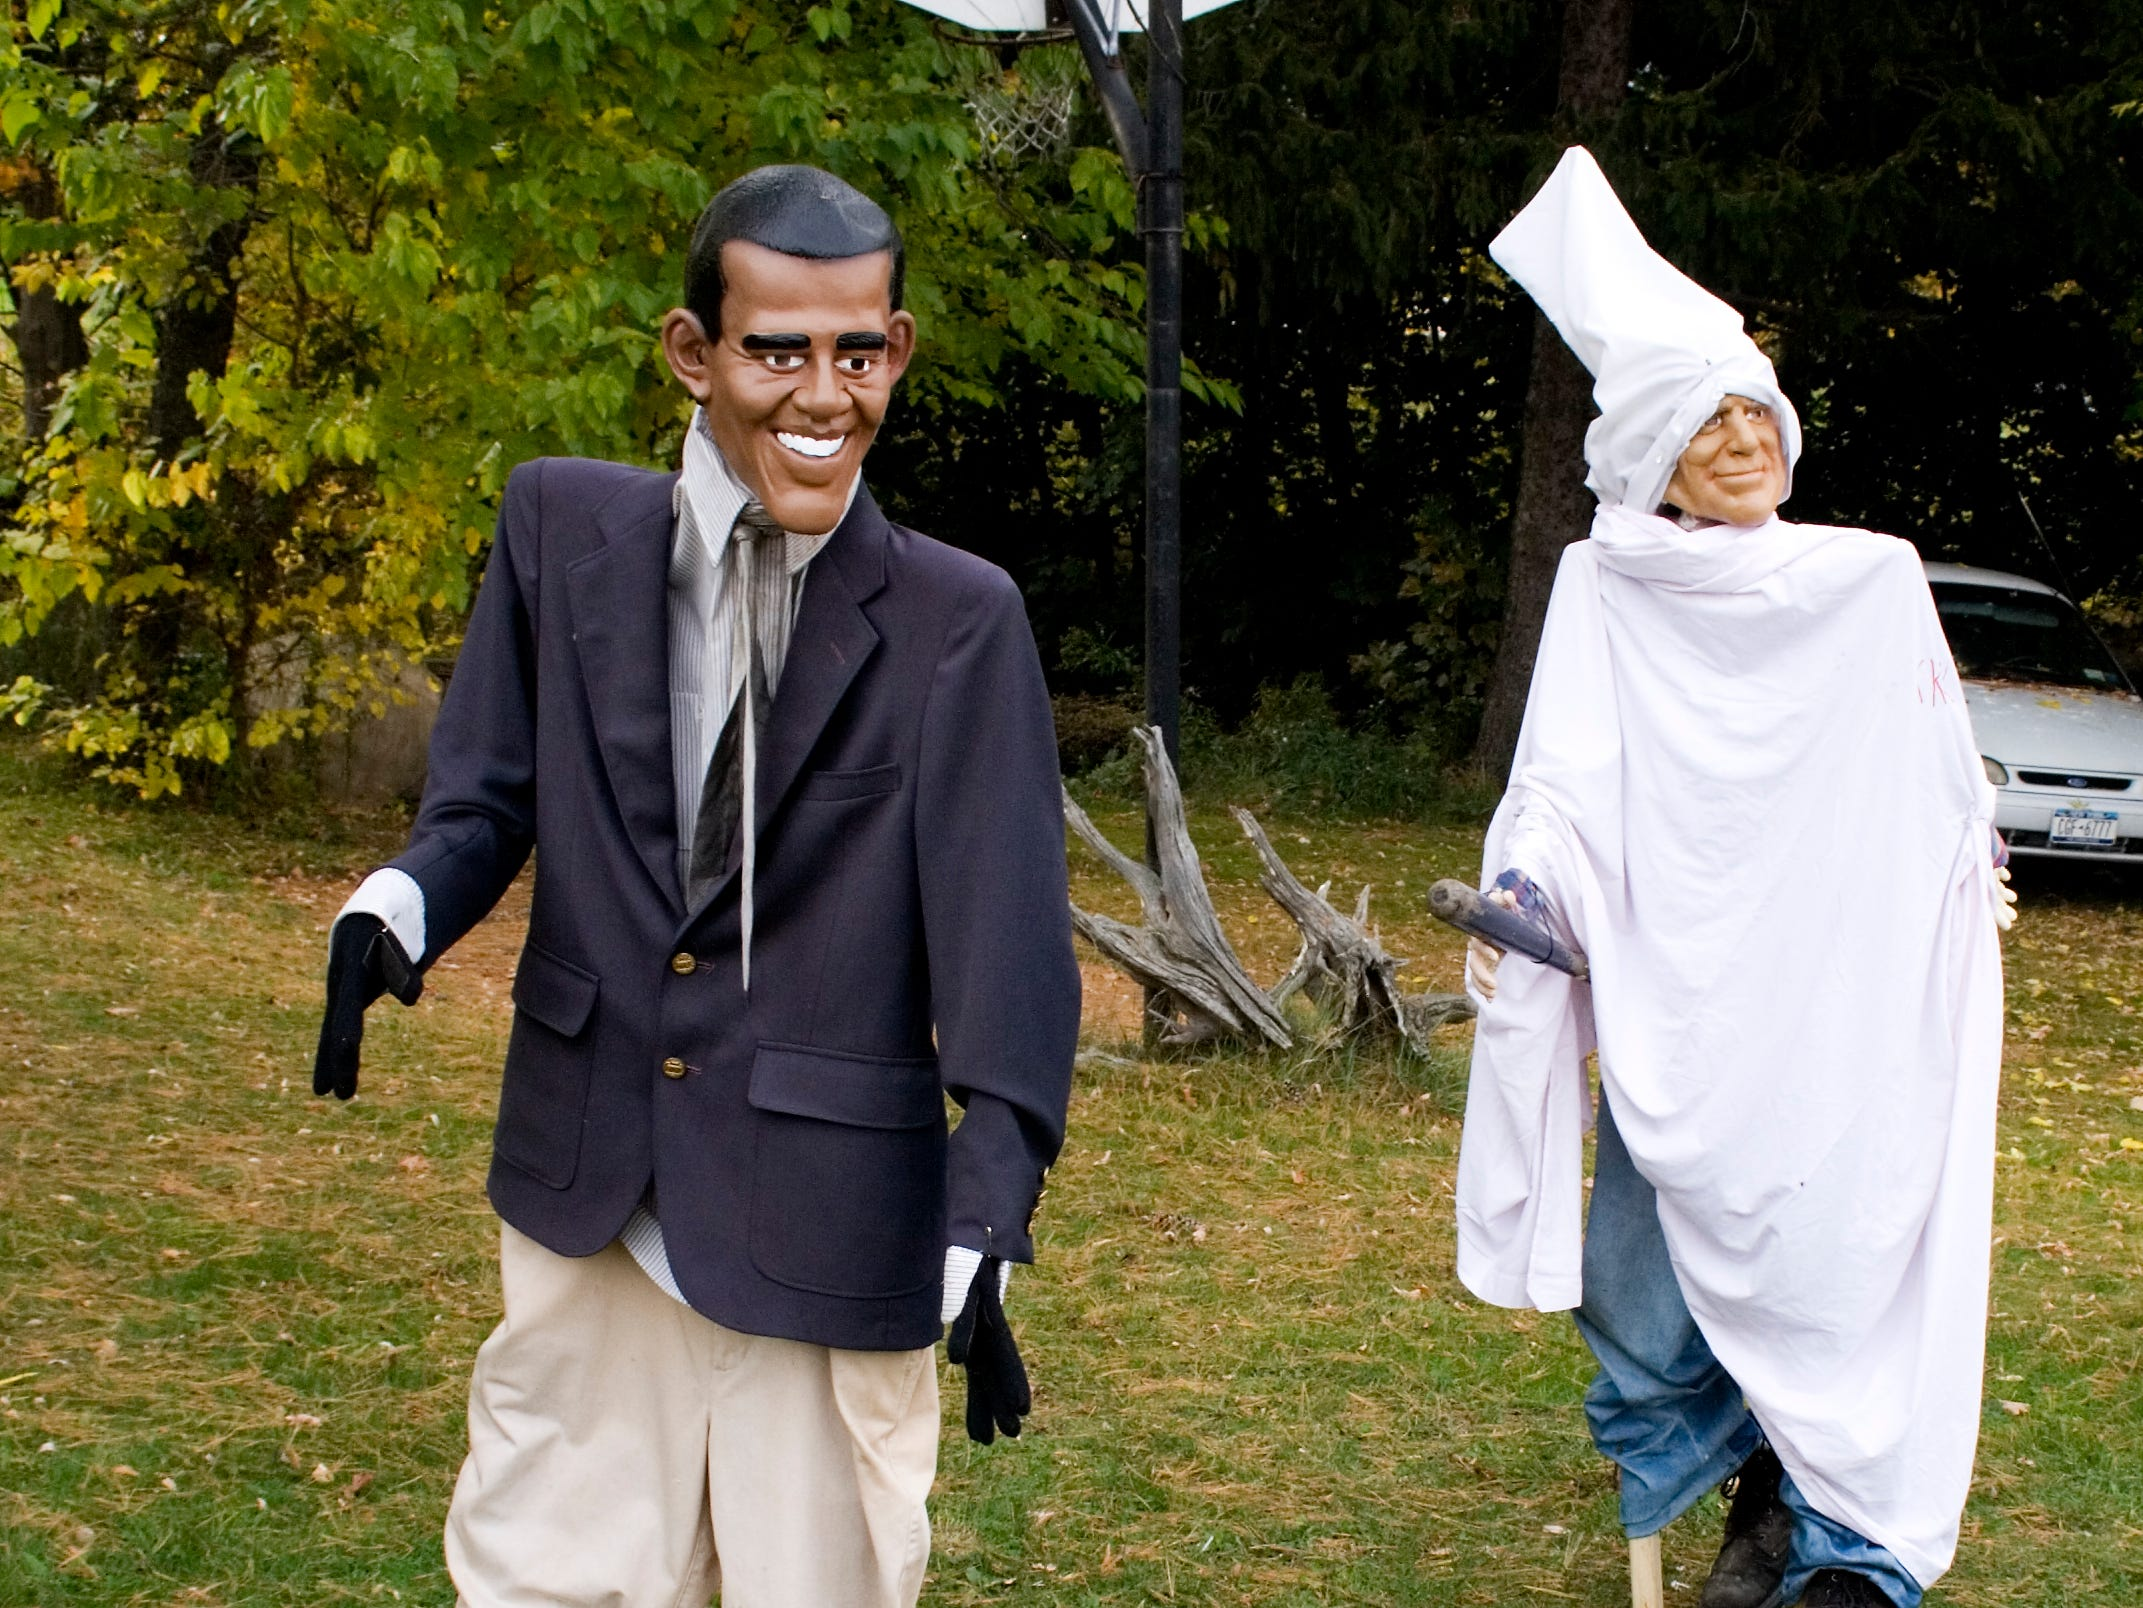 2008: Ron Havens, who lives near Odessa, knew this Halloween display of presidential candidate Barack Obama being chased by a hooded John McCain would stir up some controversy. The display is supposed to be a protest against McCain's treatment of Obama, Havens said.